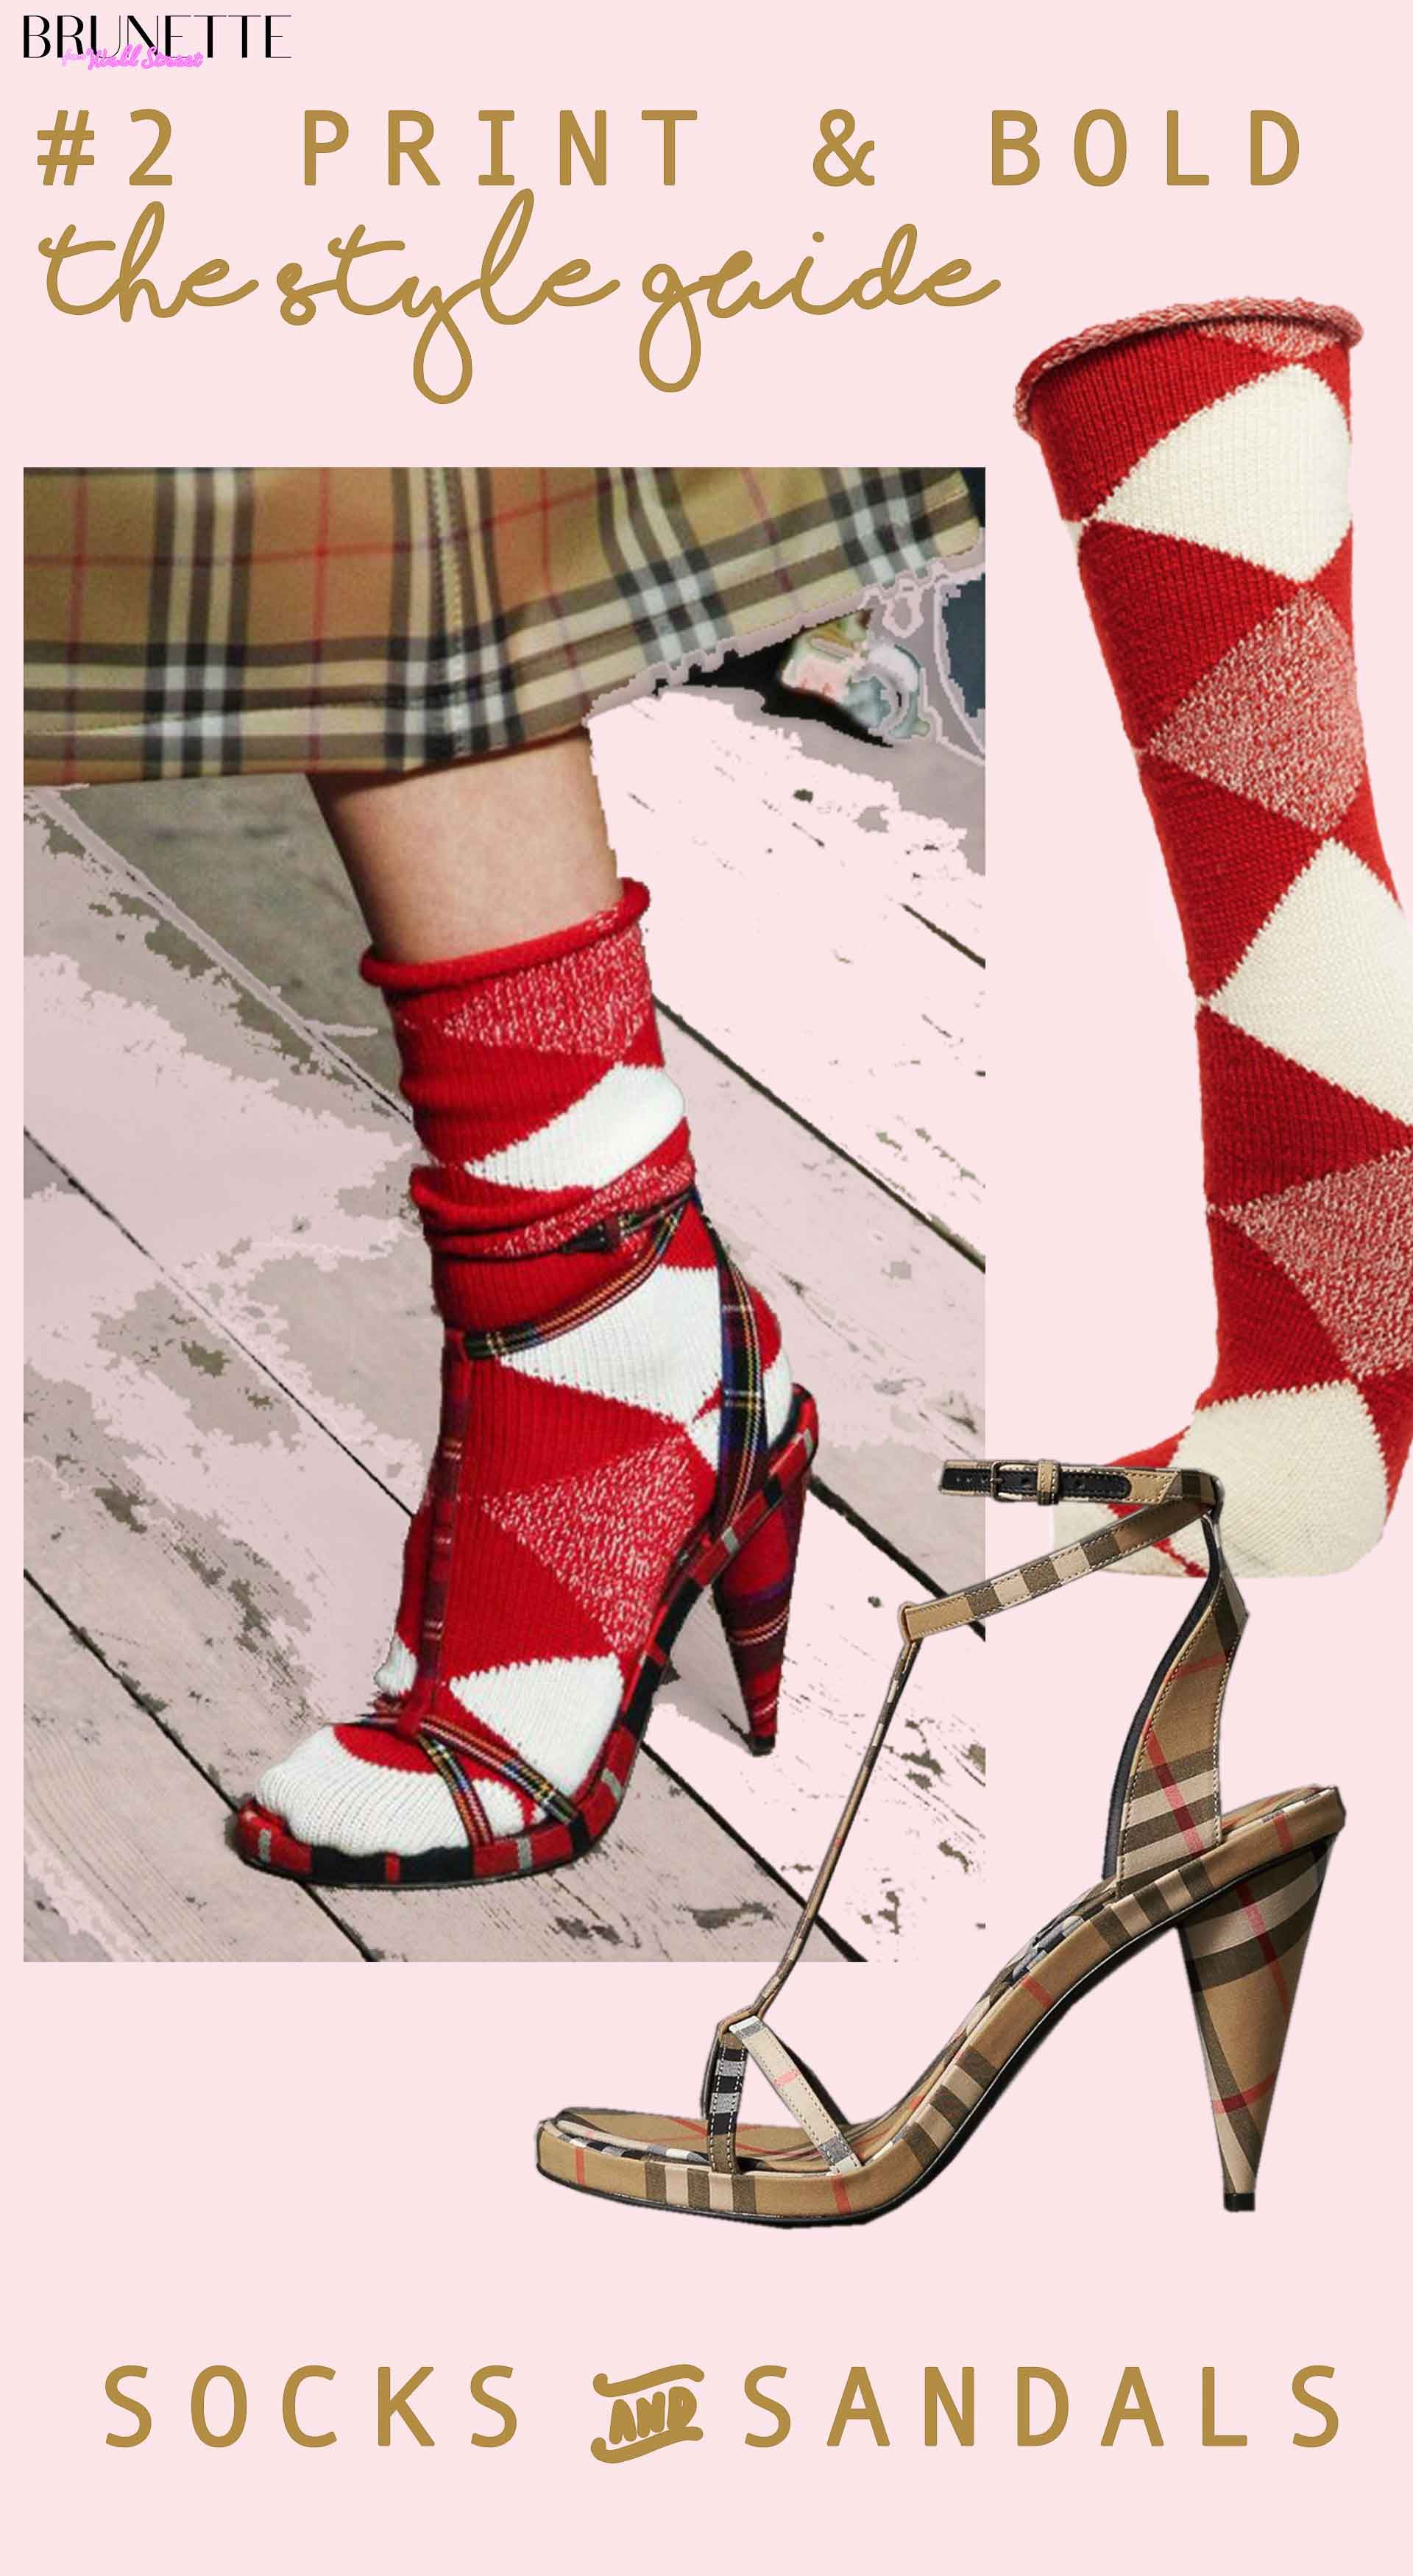 e951c7d2b Fashion Blogger Veronika Lipar of Brunette from Wall Street sharing 2 ways  to wear socks and